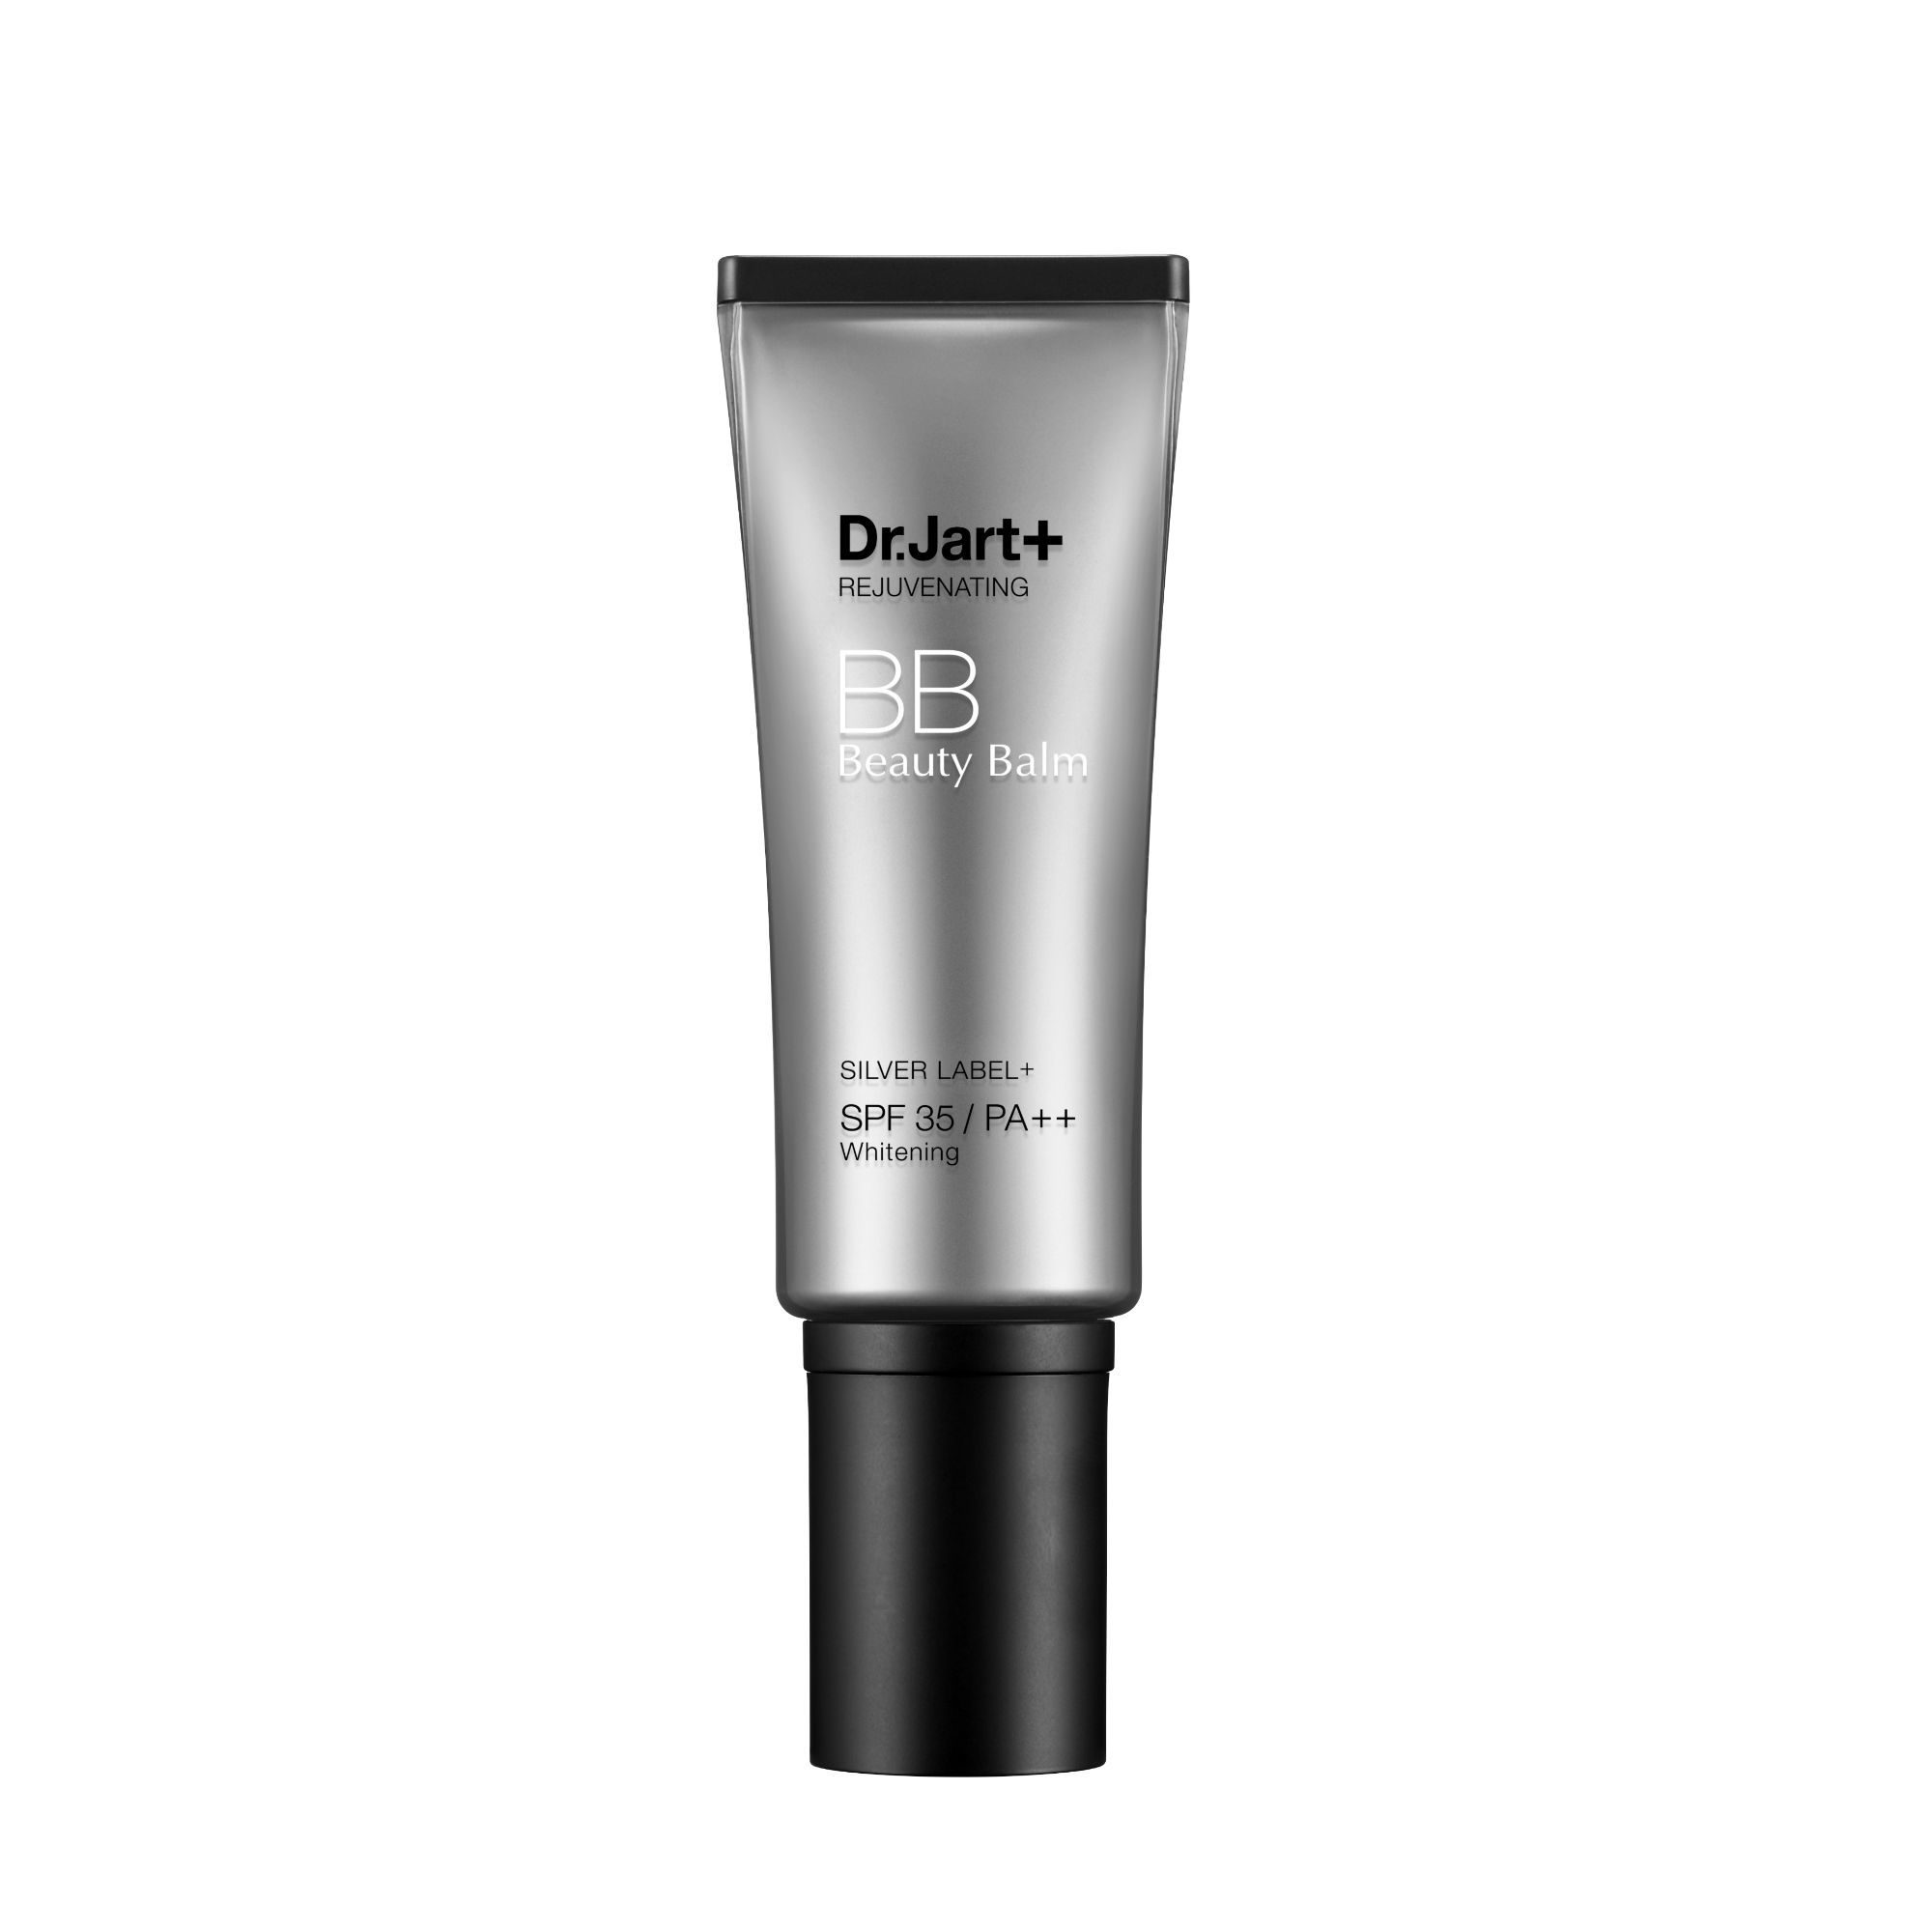 DR.JART+ Rejuvenating Beauty Balm Silver Label+ SPF35/PA++ BB Крем Silver Label омолаживающий с SPF35/PA++